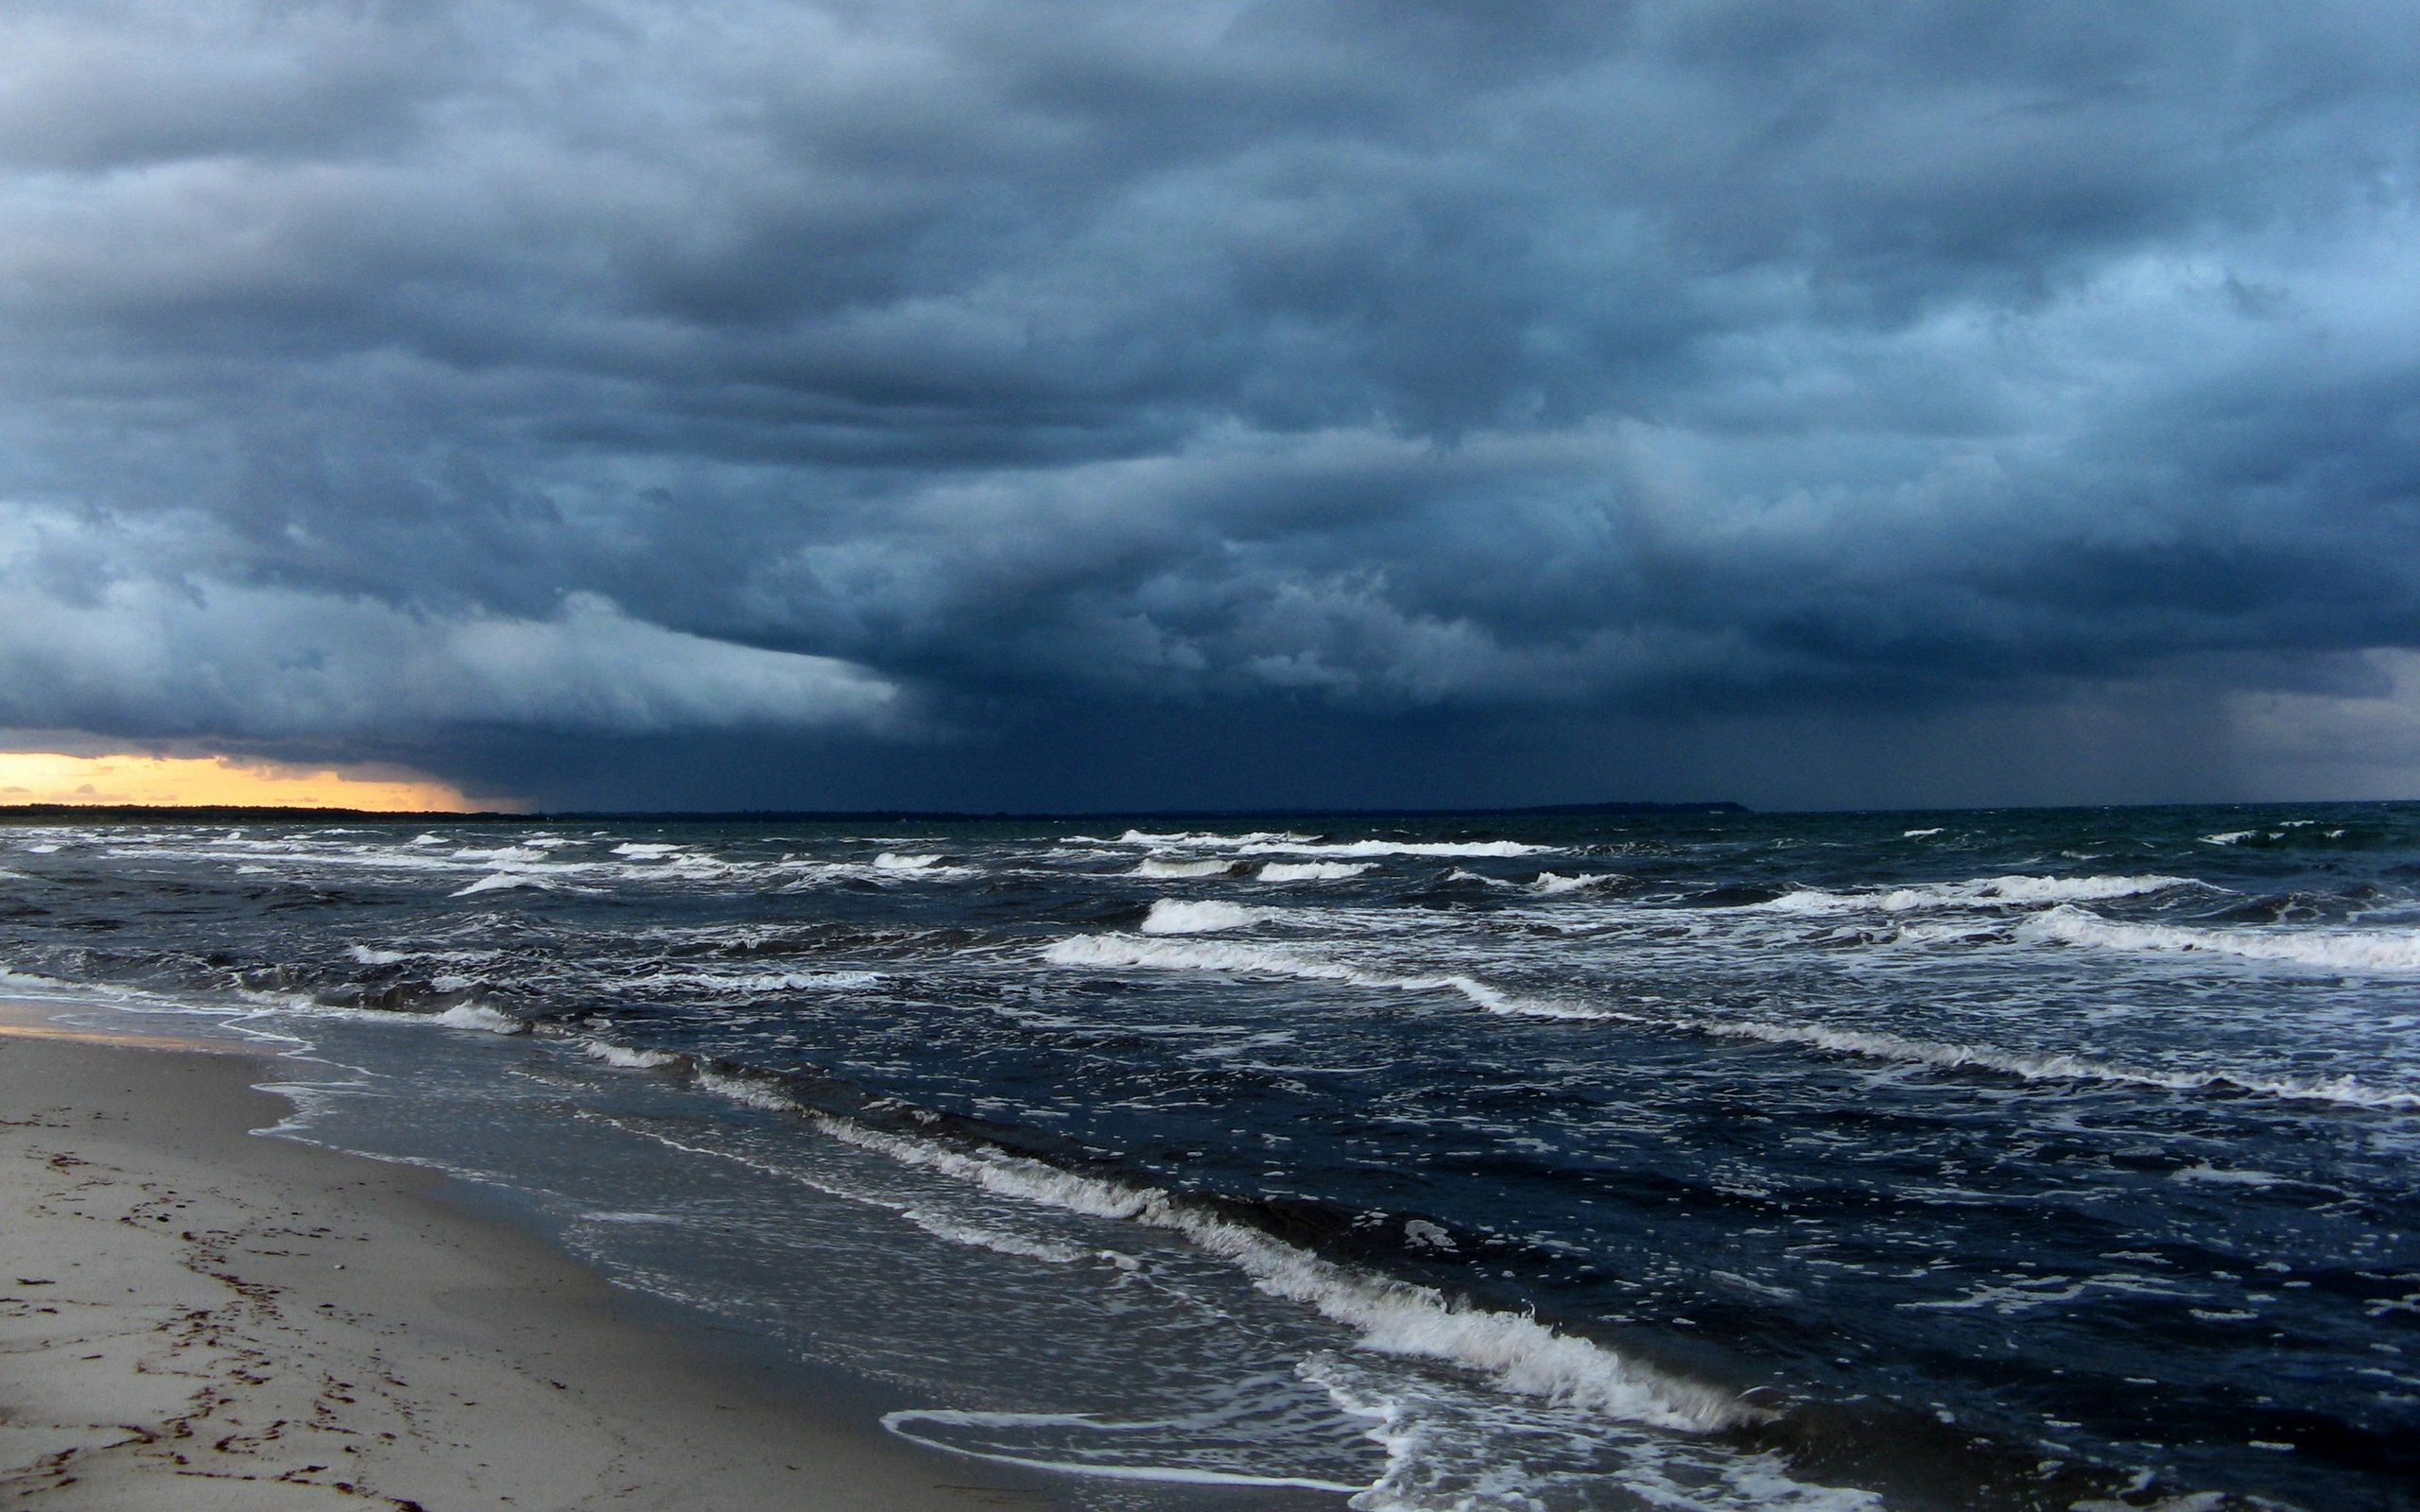 Beach And Ocean Storm: Ocean Storms Pictures Storm, Beach, Beautiful, Clouds